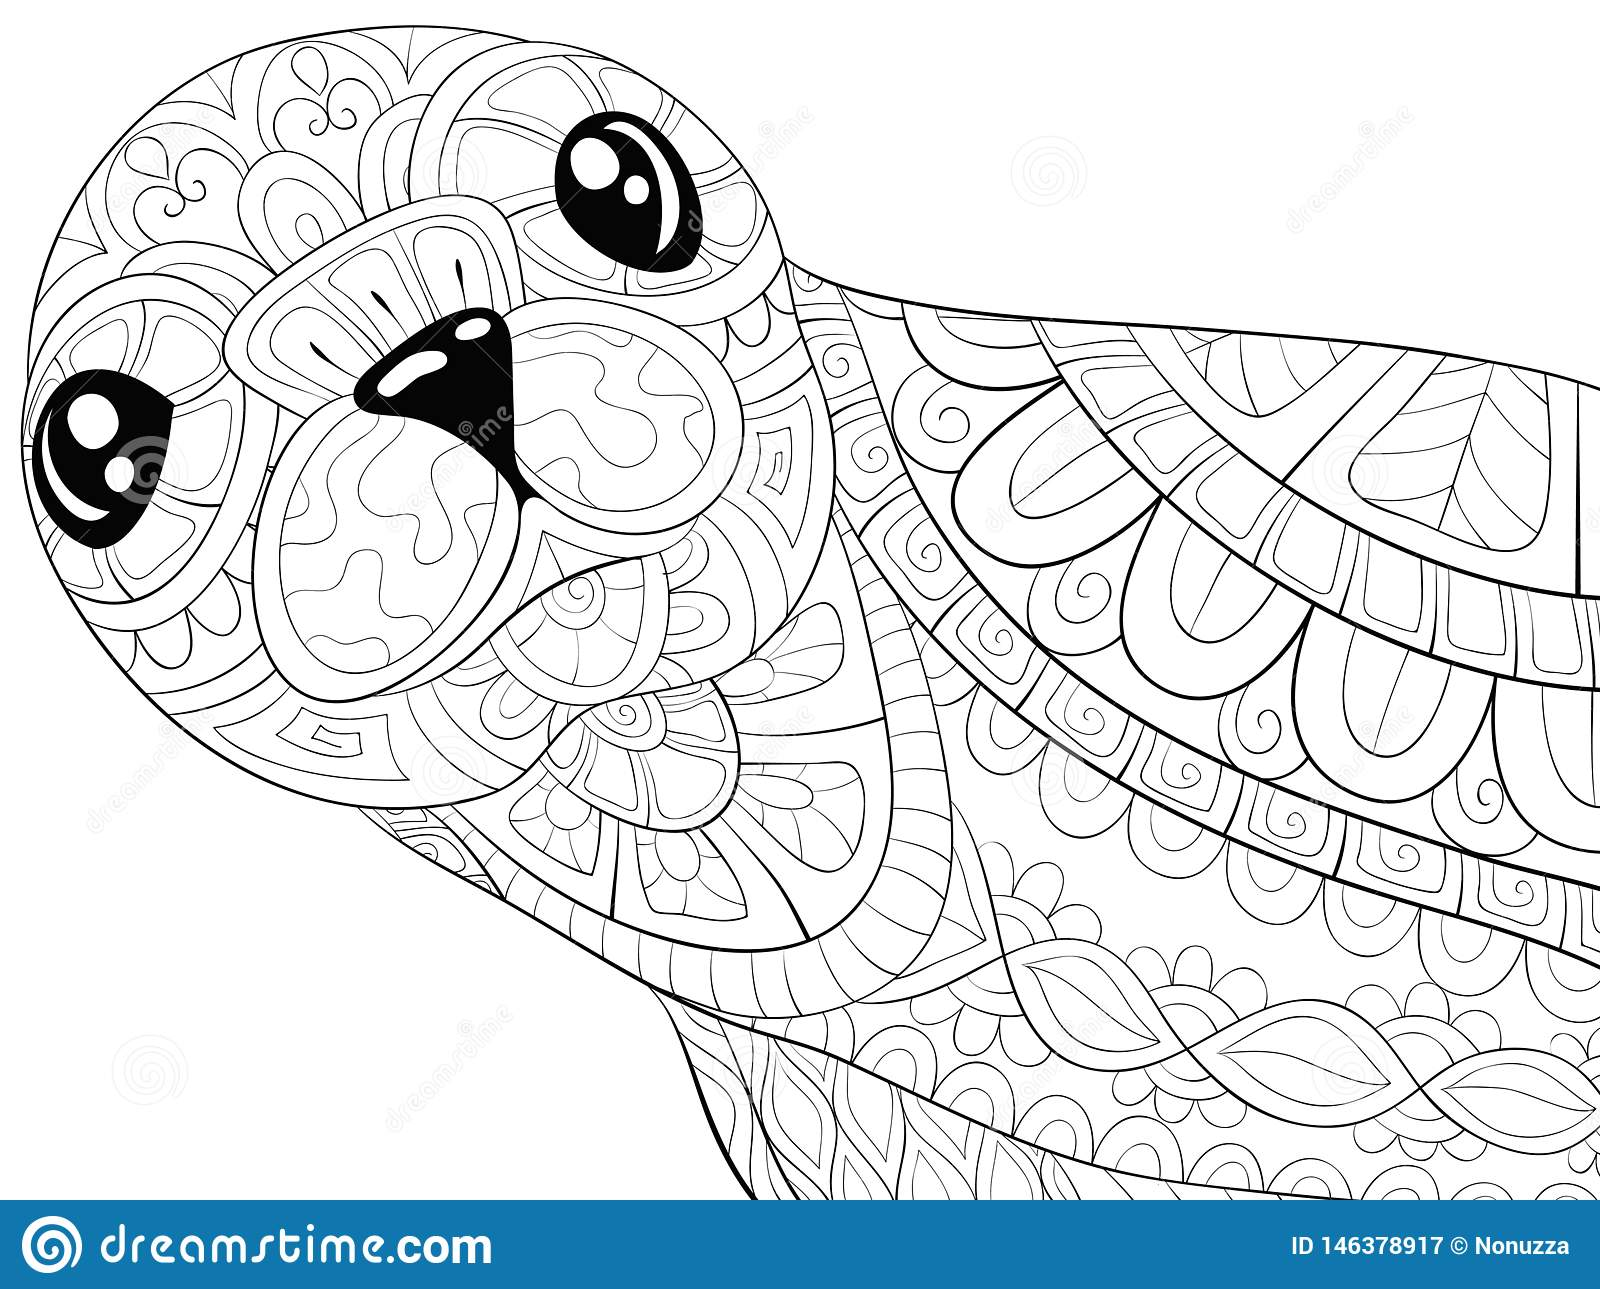 Adult Coloring Book Page A Cute Seal With Ornaments Image For Relaxing Zen Art Style Illustration Stock Vector Illustration Of Lamb Floral 146378917